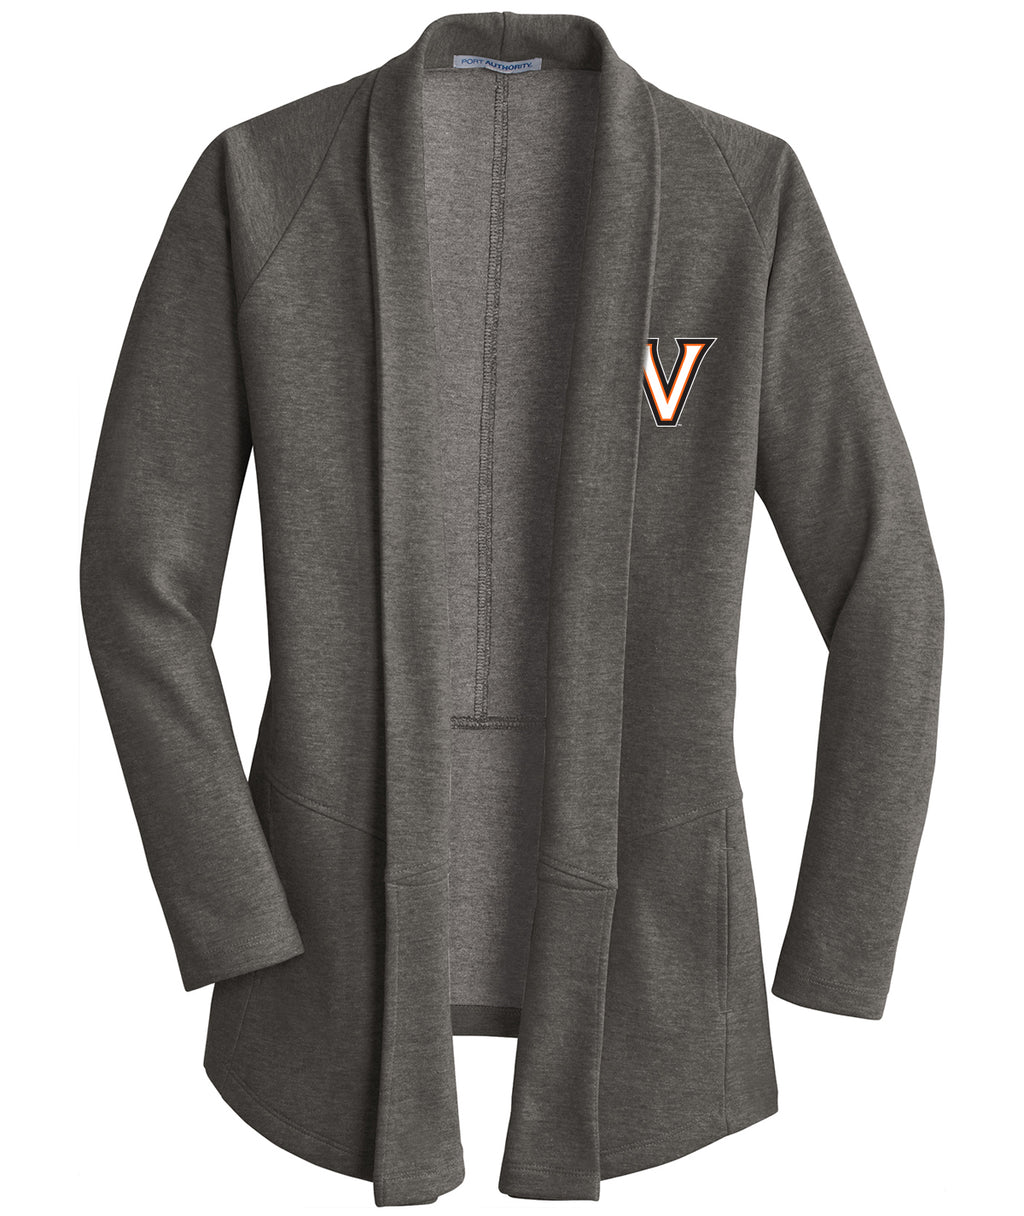 Valley V Womens Interlock Cardigan